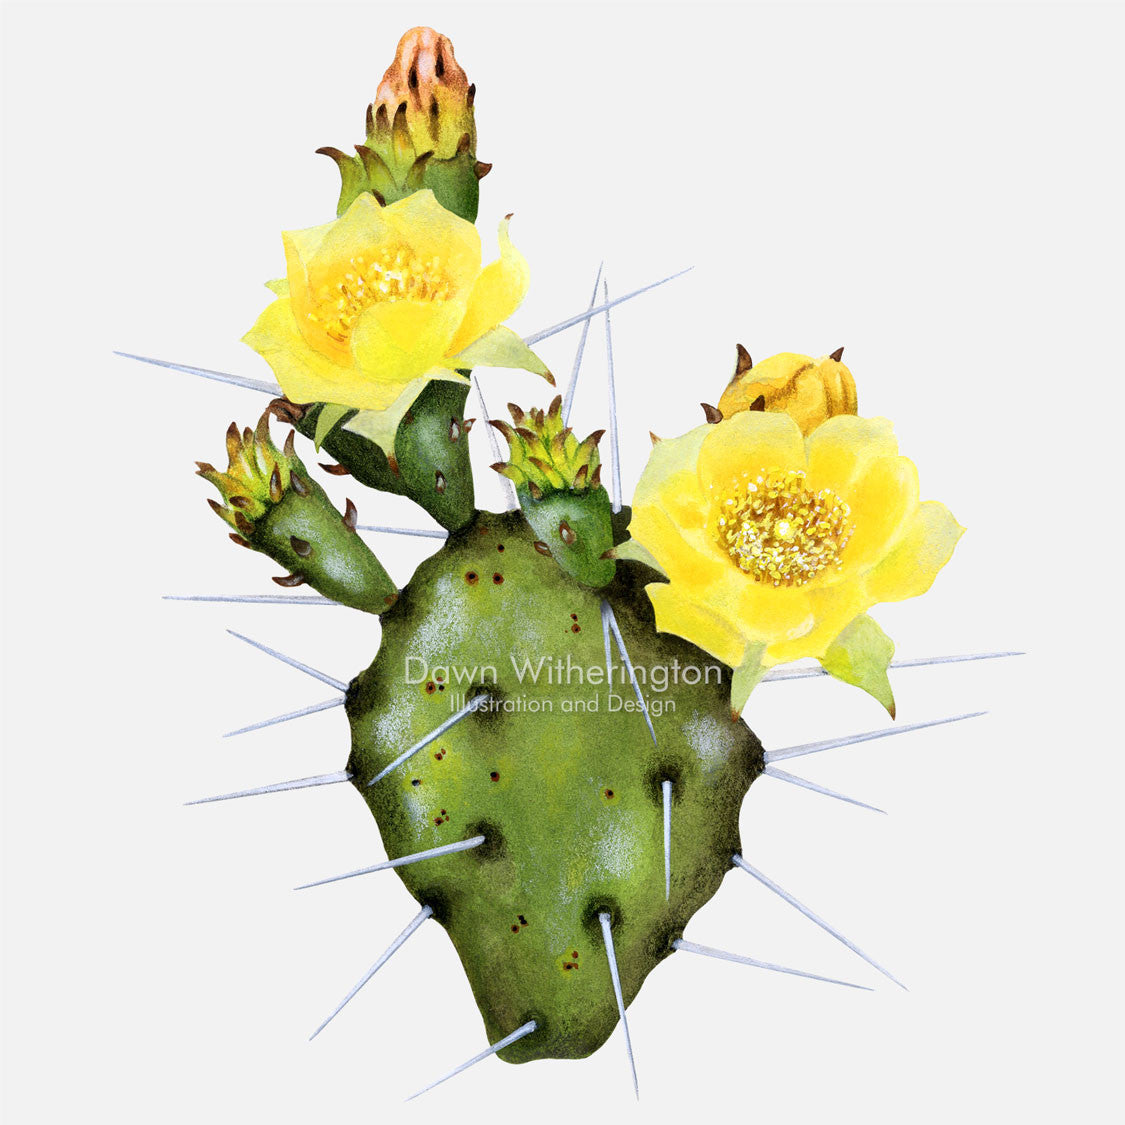 This beautiful illustration an eastern prickly pear cactus (devil's tongue), Opuntia humifusa, is botanically accurate in detail.